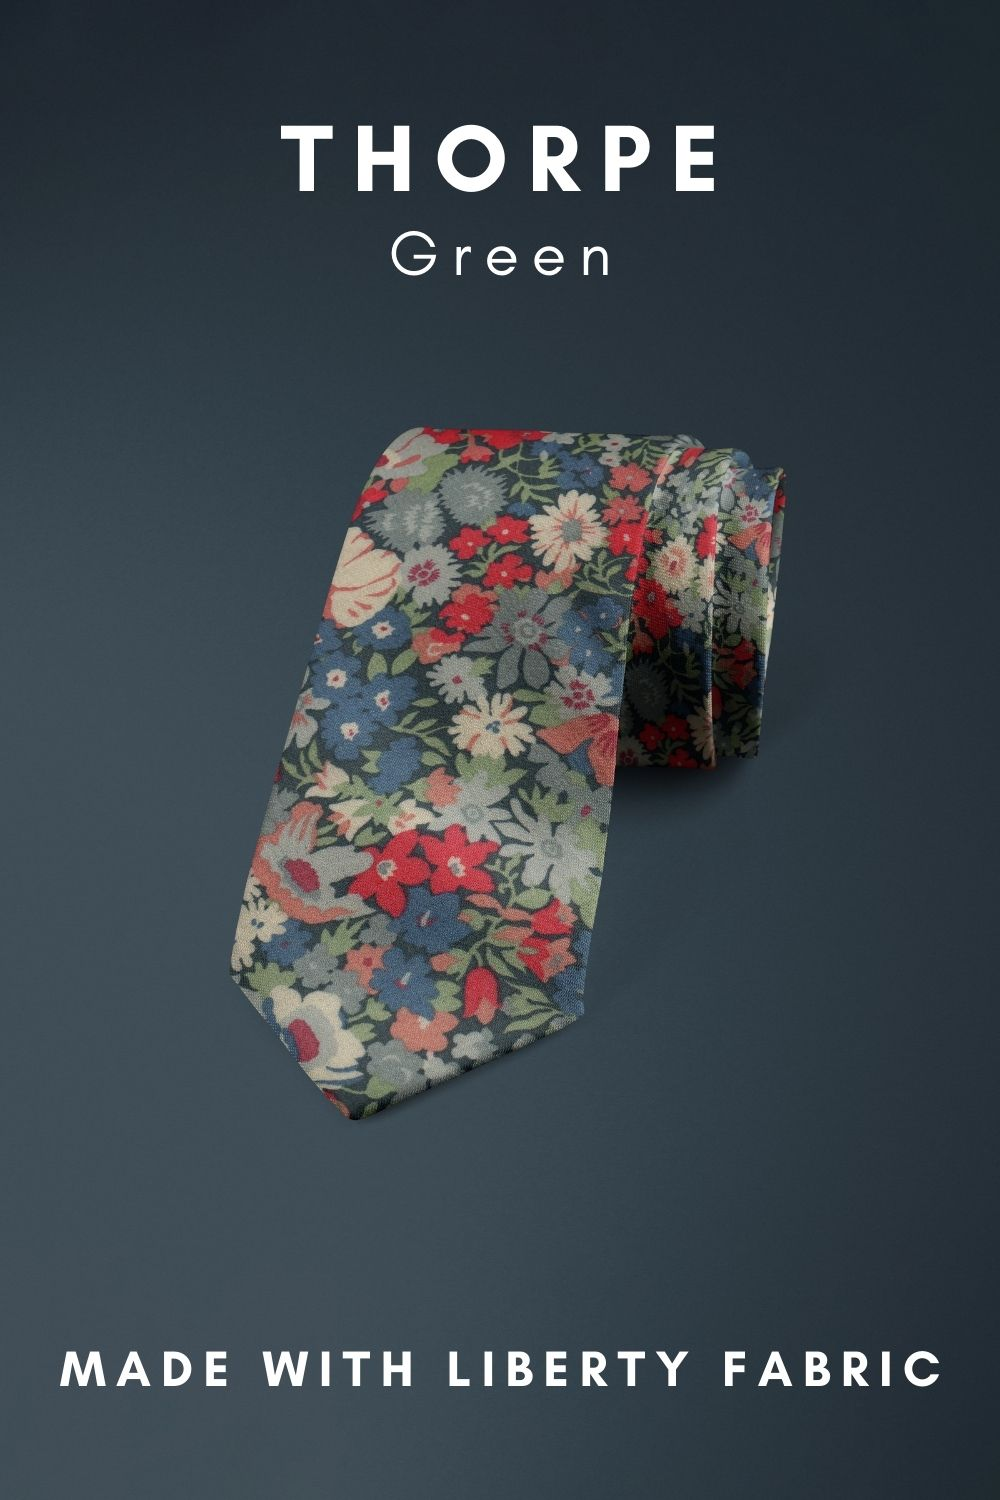 Green Thorpe Liberty of London cotton fabric floral tie